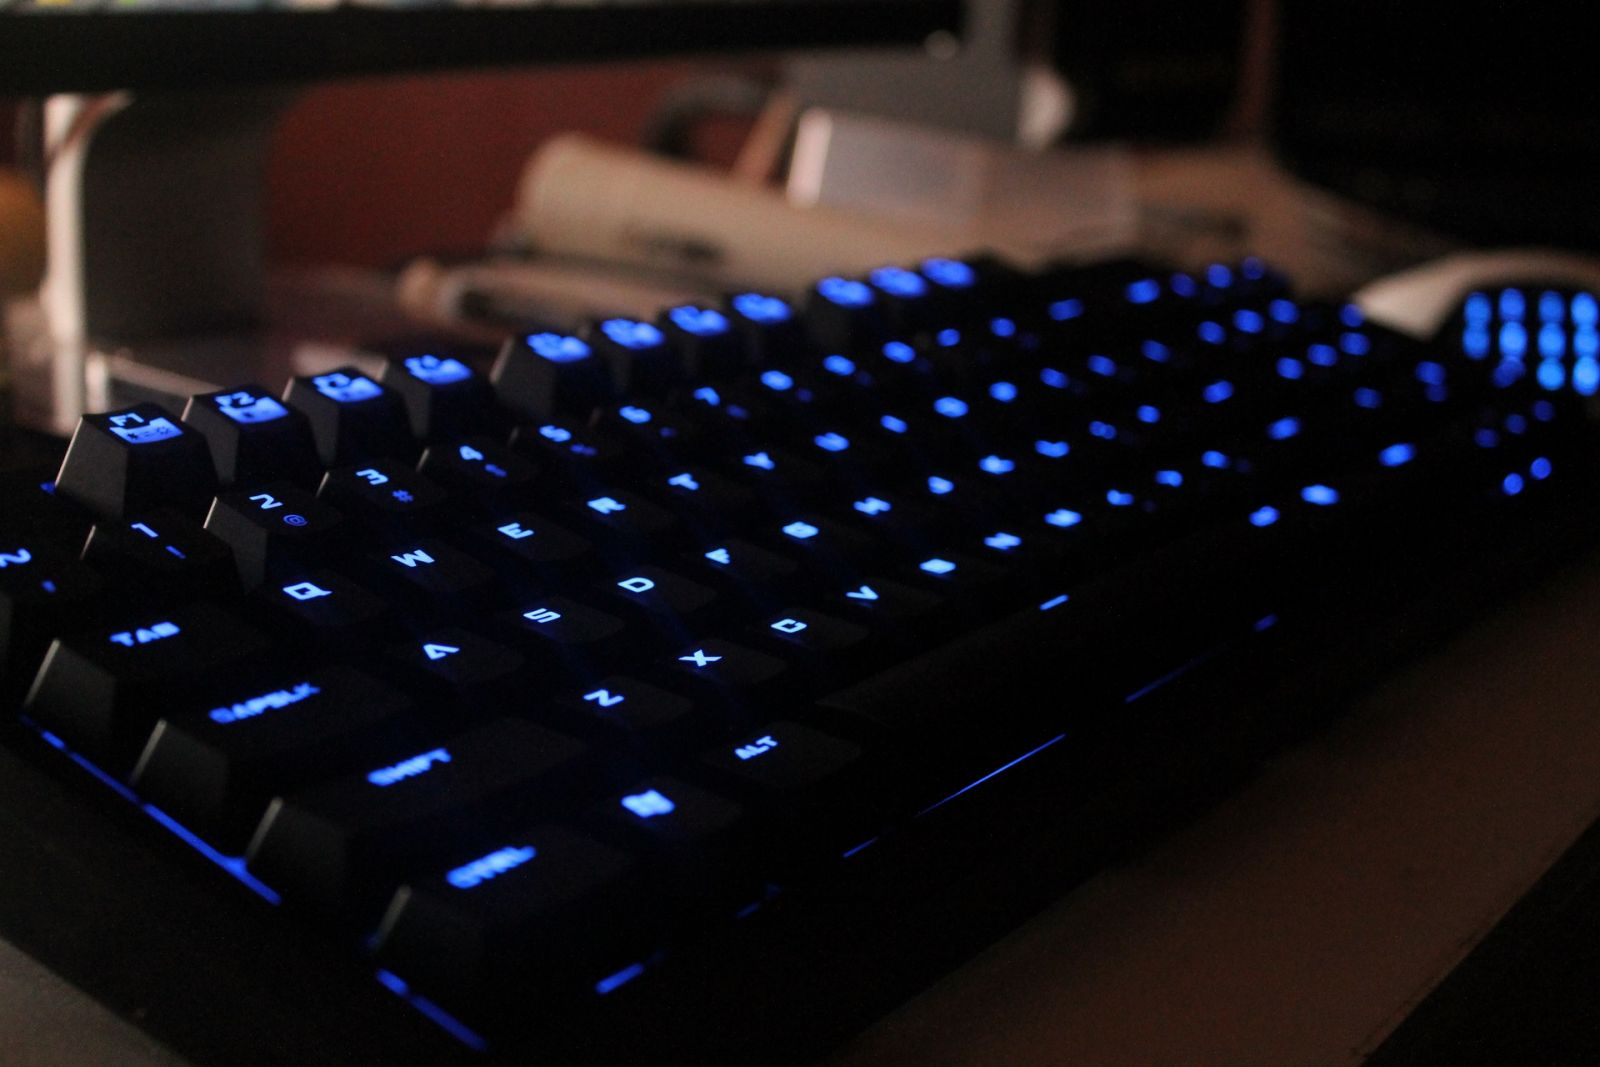 CM Storm Quickfire TK with Blue switches.